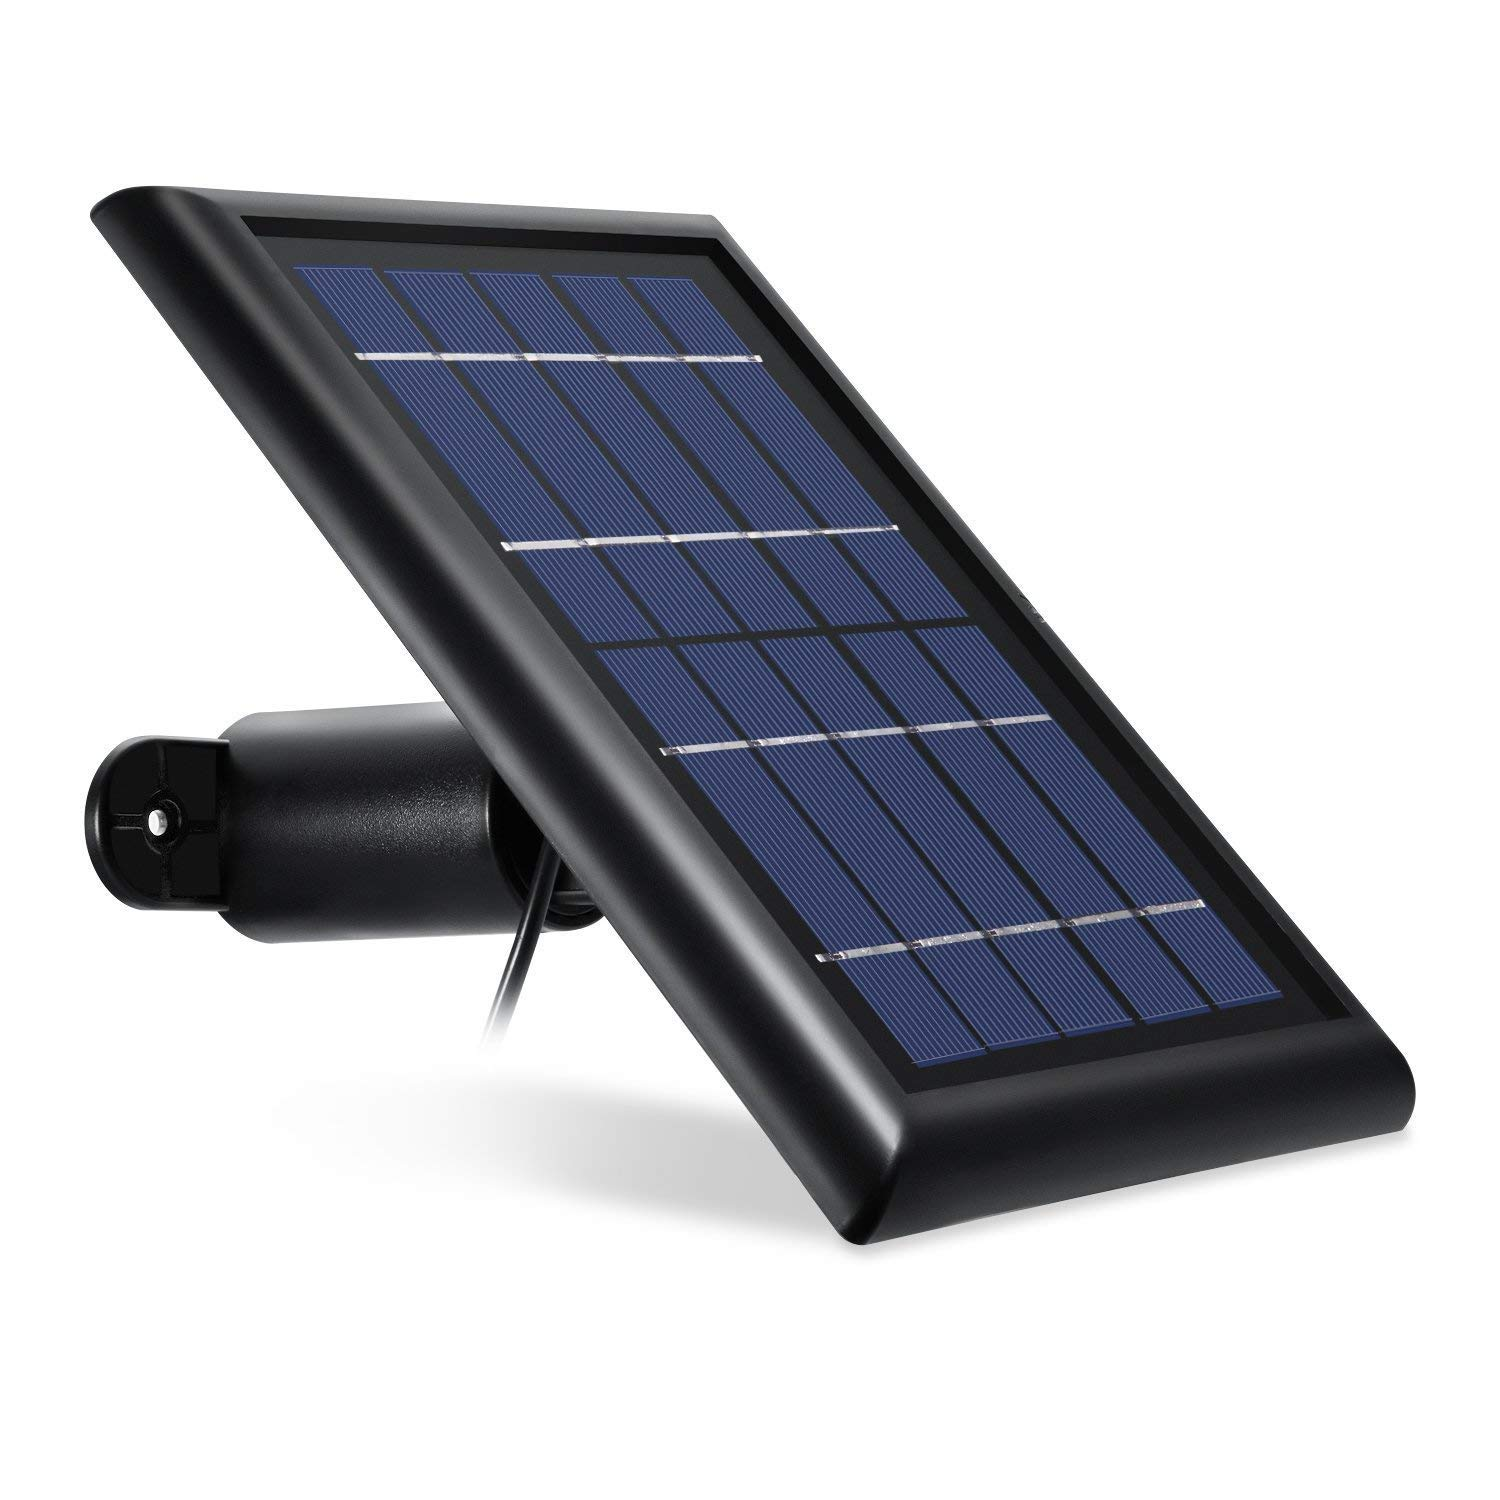 [Updated Version] Wasserstein Arlo Solar Panel Compatible with Arlo Pro, Pro 2, GO & Light (Black) by Wasserstein